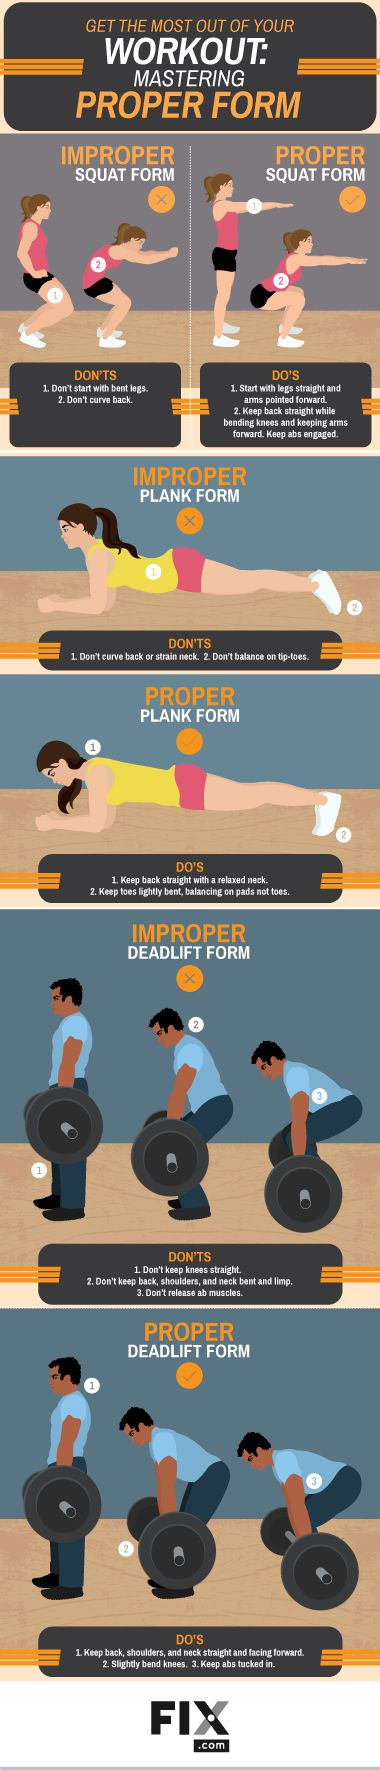 Proper form will help better engage your muscles and optimize your workout. Learn tips and tricks to master squats, planks and deadlifts!